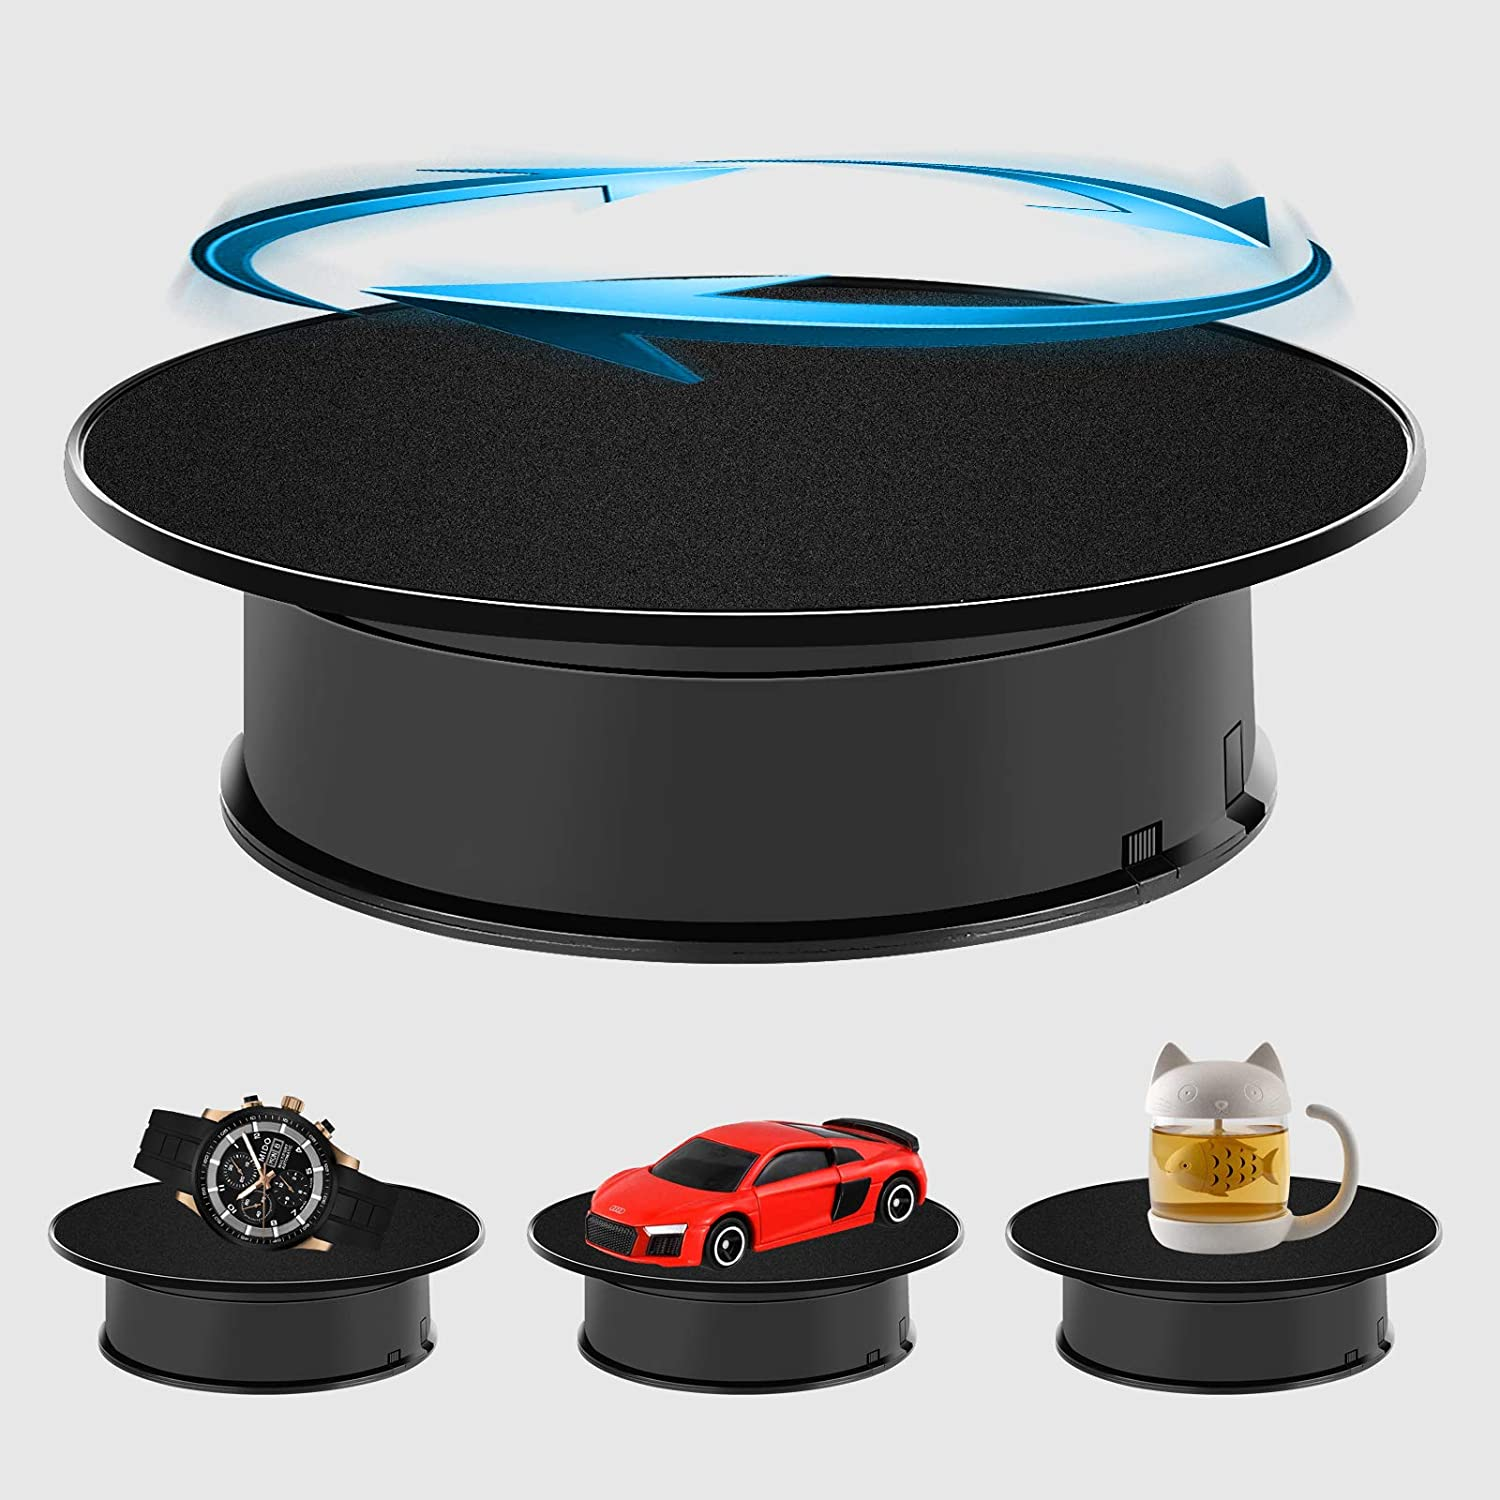 8 Black Velvet Top Motorized Rotating Display Base Turntable Stand with AC Adapter for Crafts /& Hobbies Fashion Jewelry Display Decoration